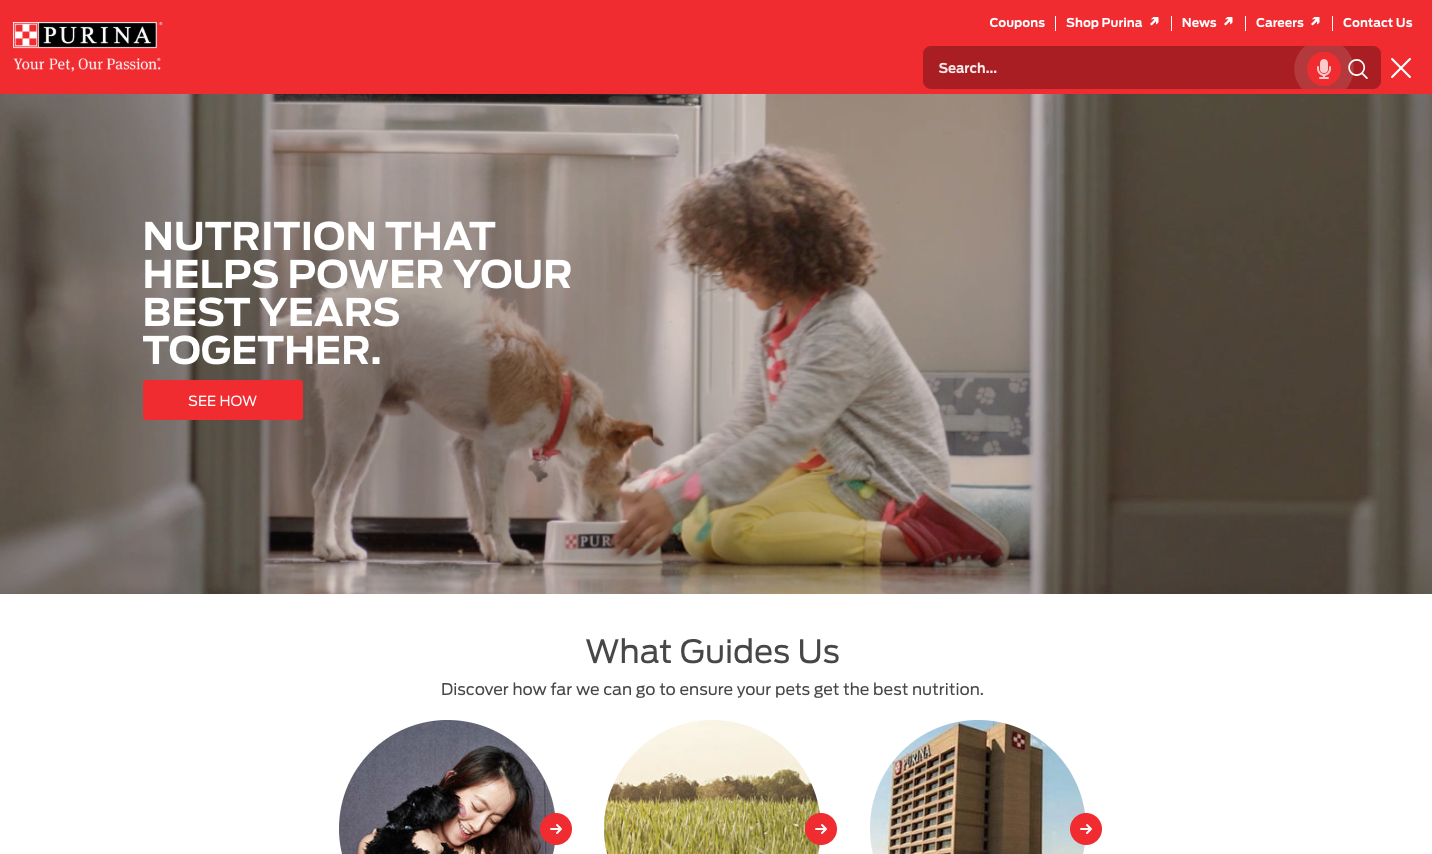 A new way to navigate Purina.com